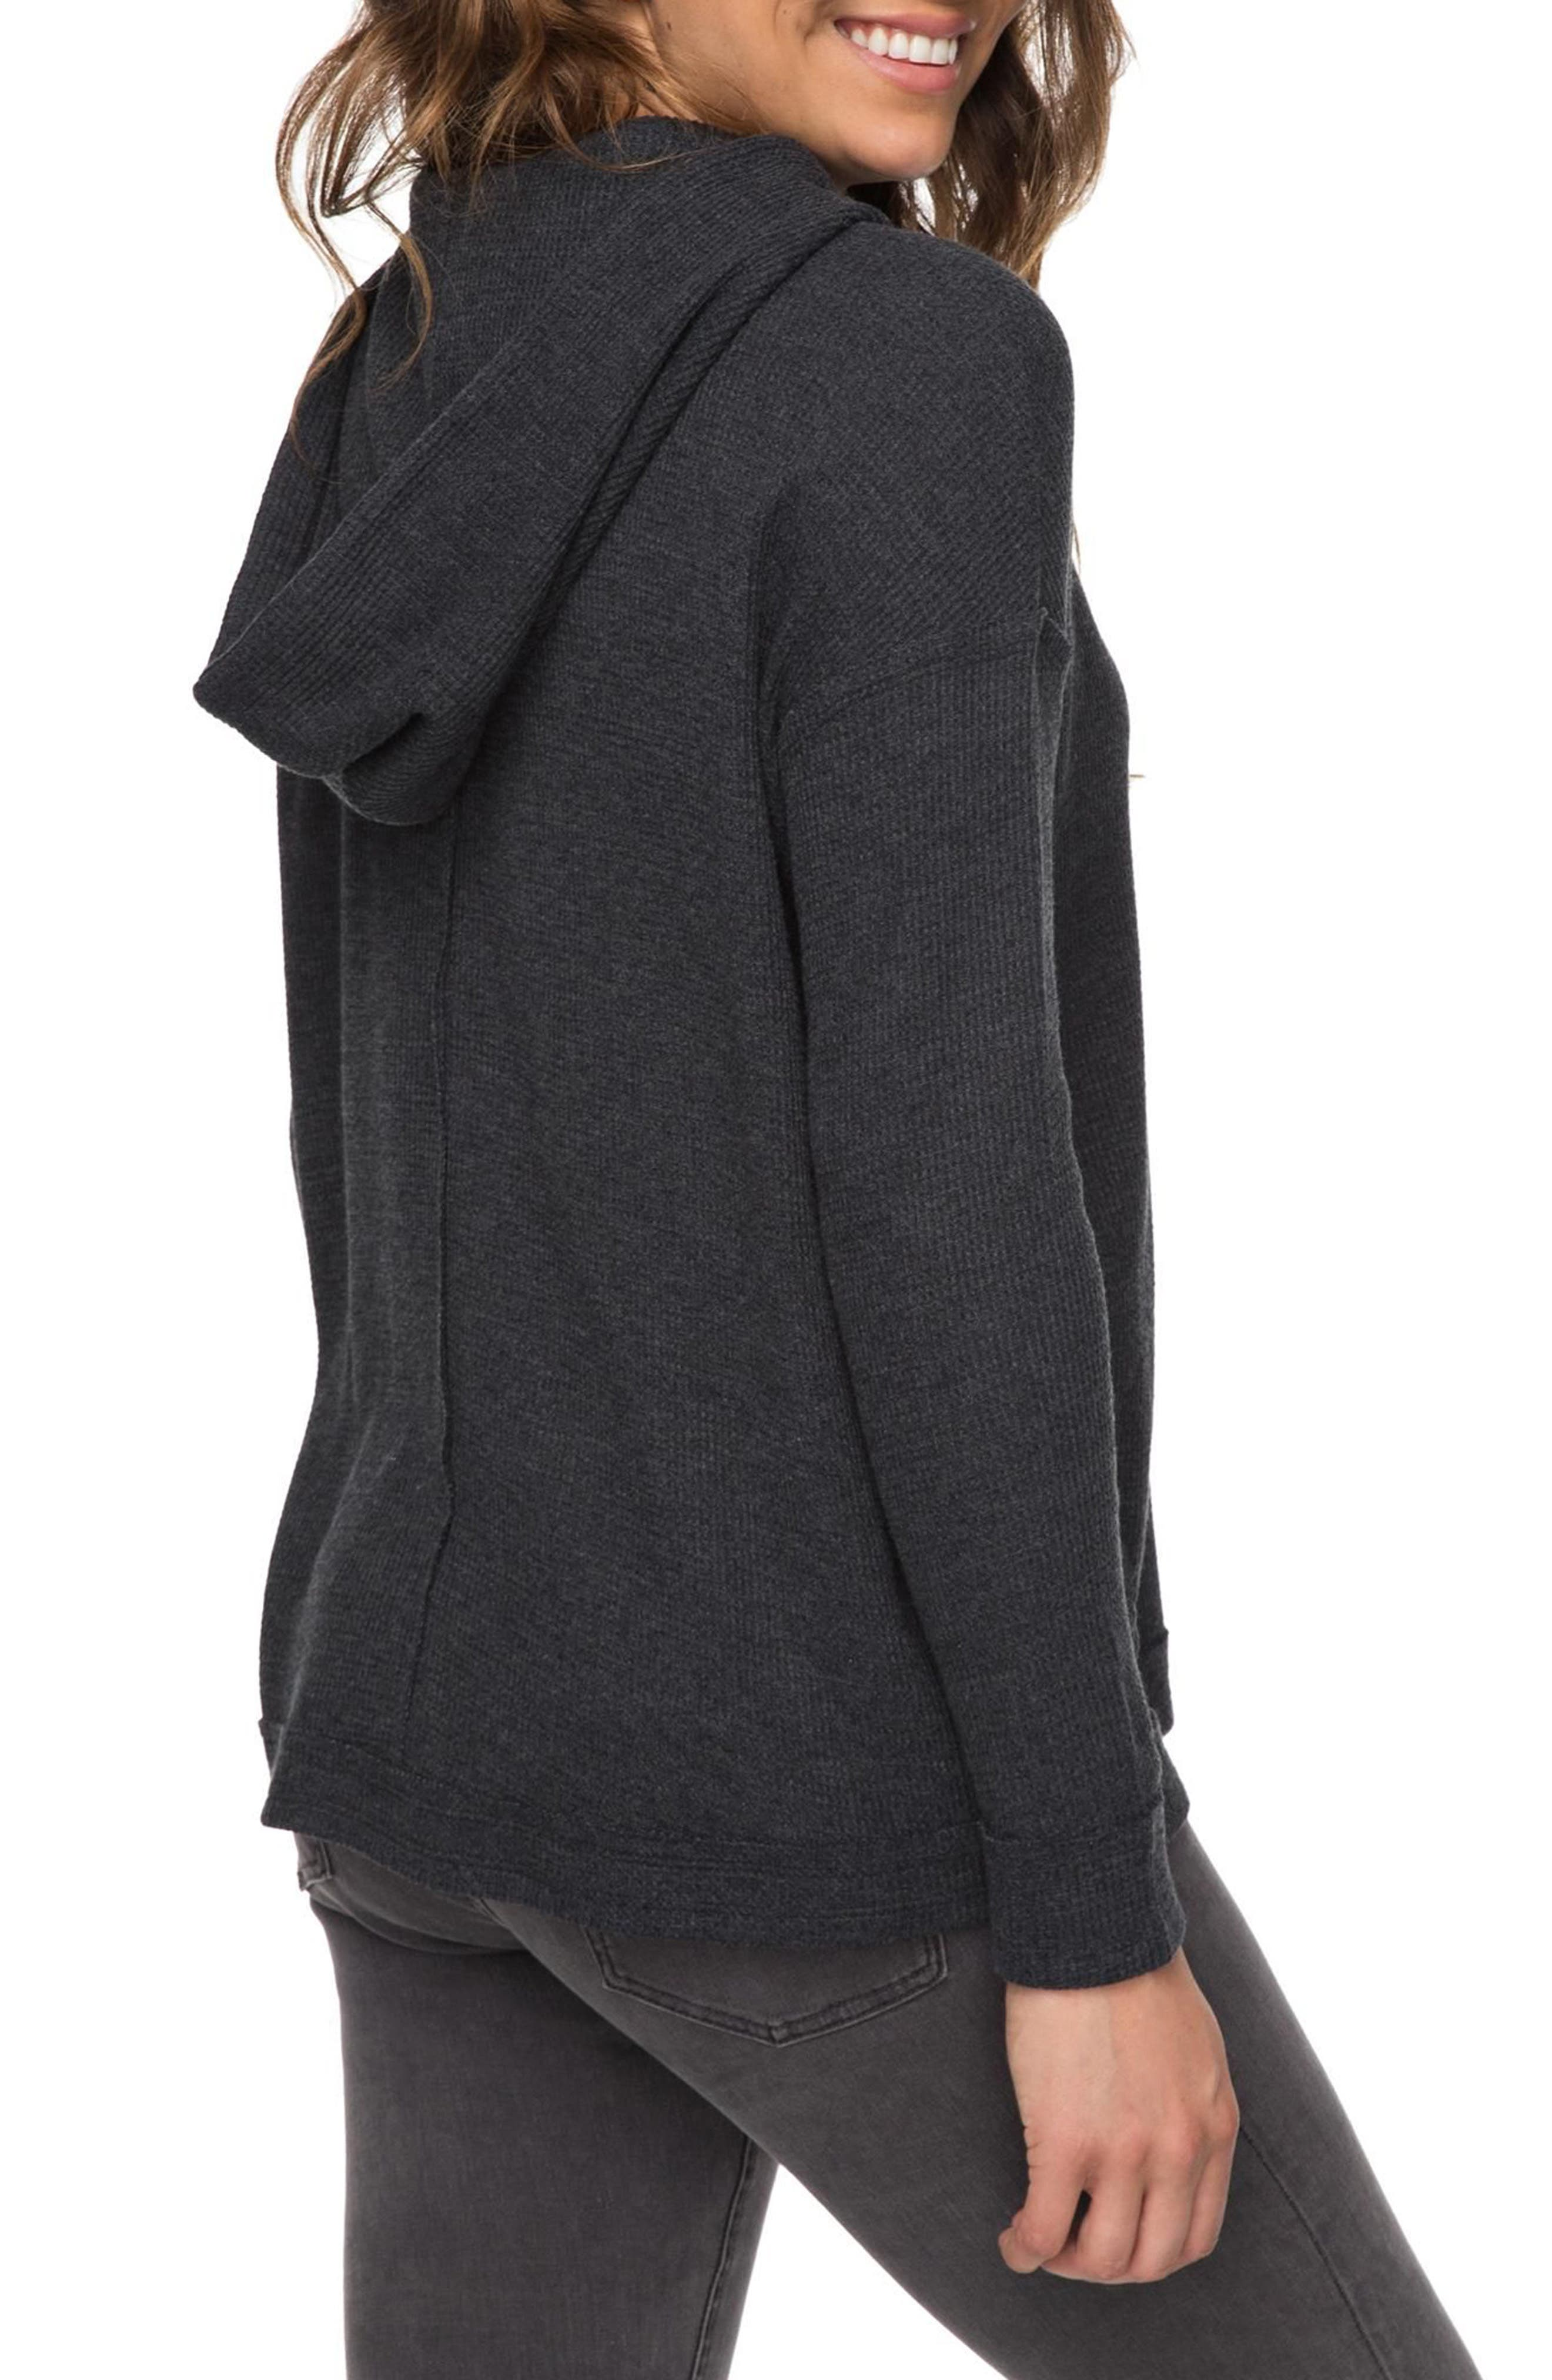 Wanted and Wild Hooded Thermal Top,                             Alternate thumbnail 3, color,                             Anthracite